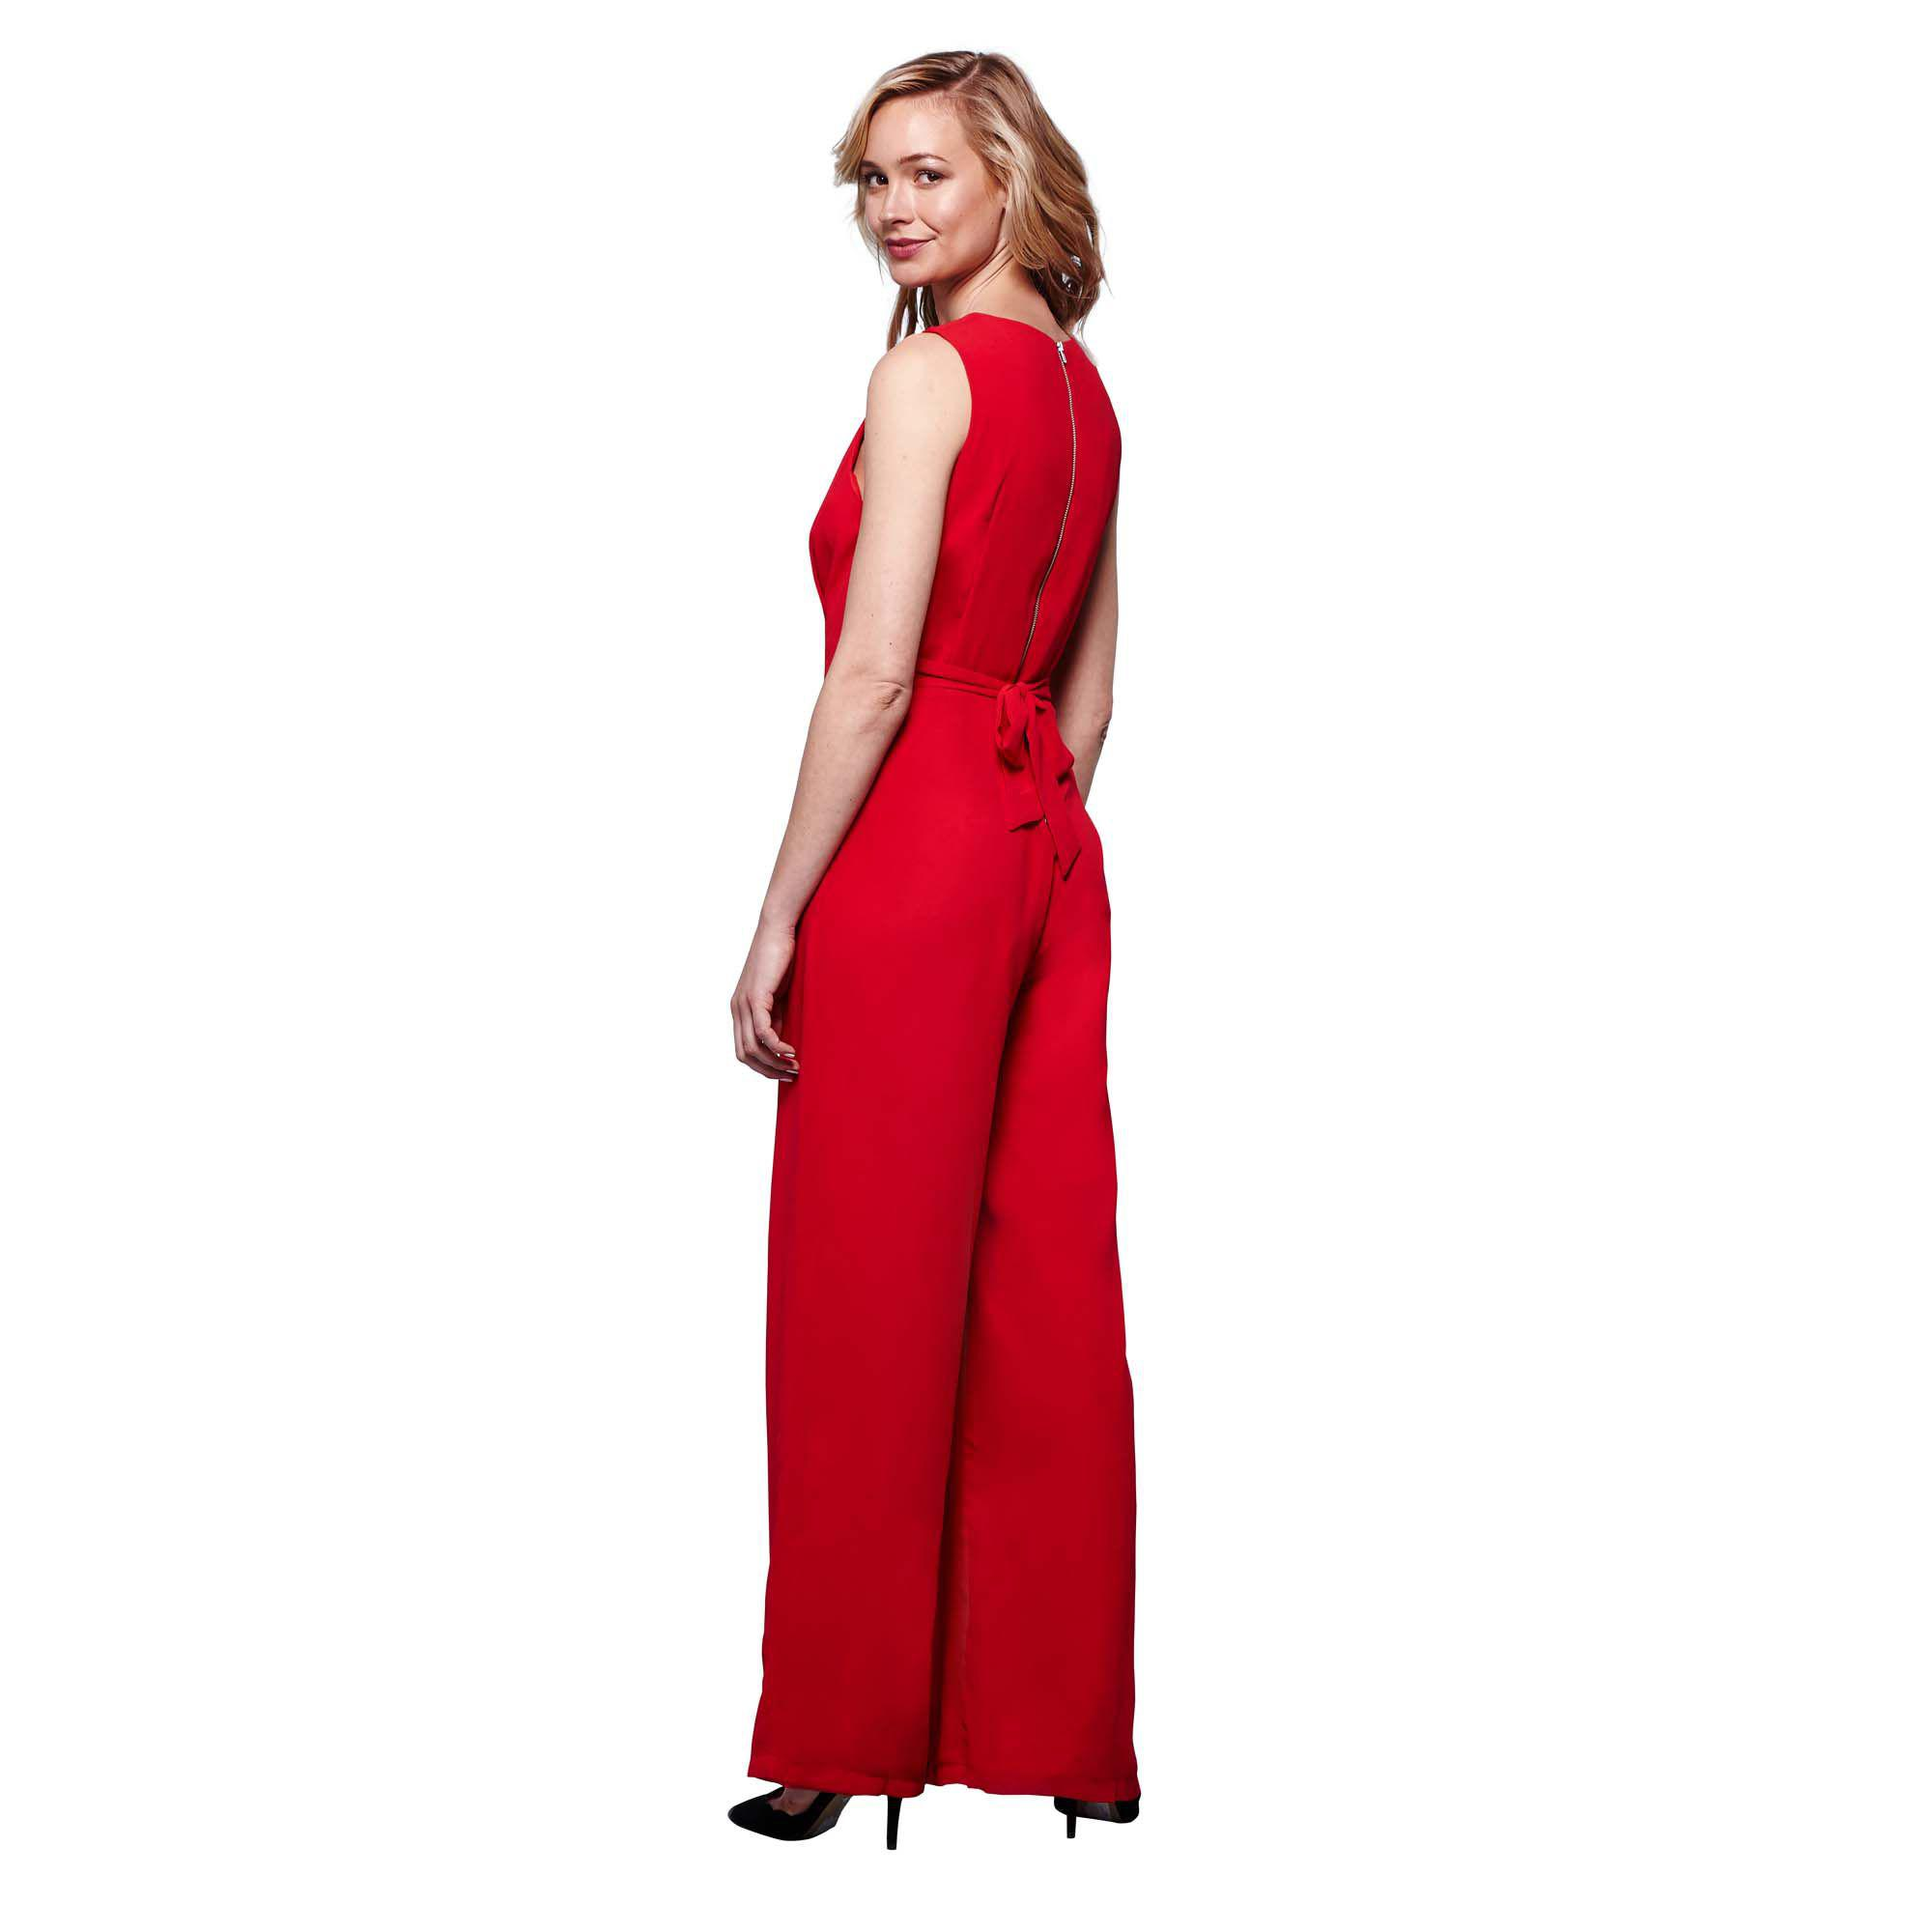 5b7fafc3a041 Yumi  Red Wide Leg V-neck Jumpsuit in Red - Lyst